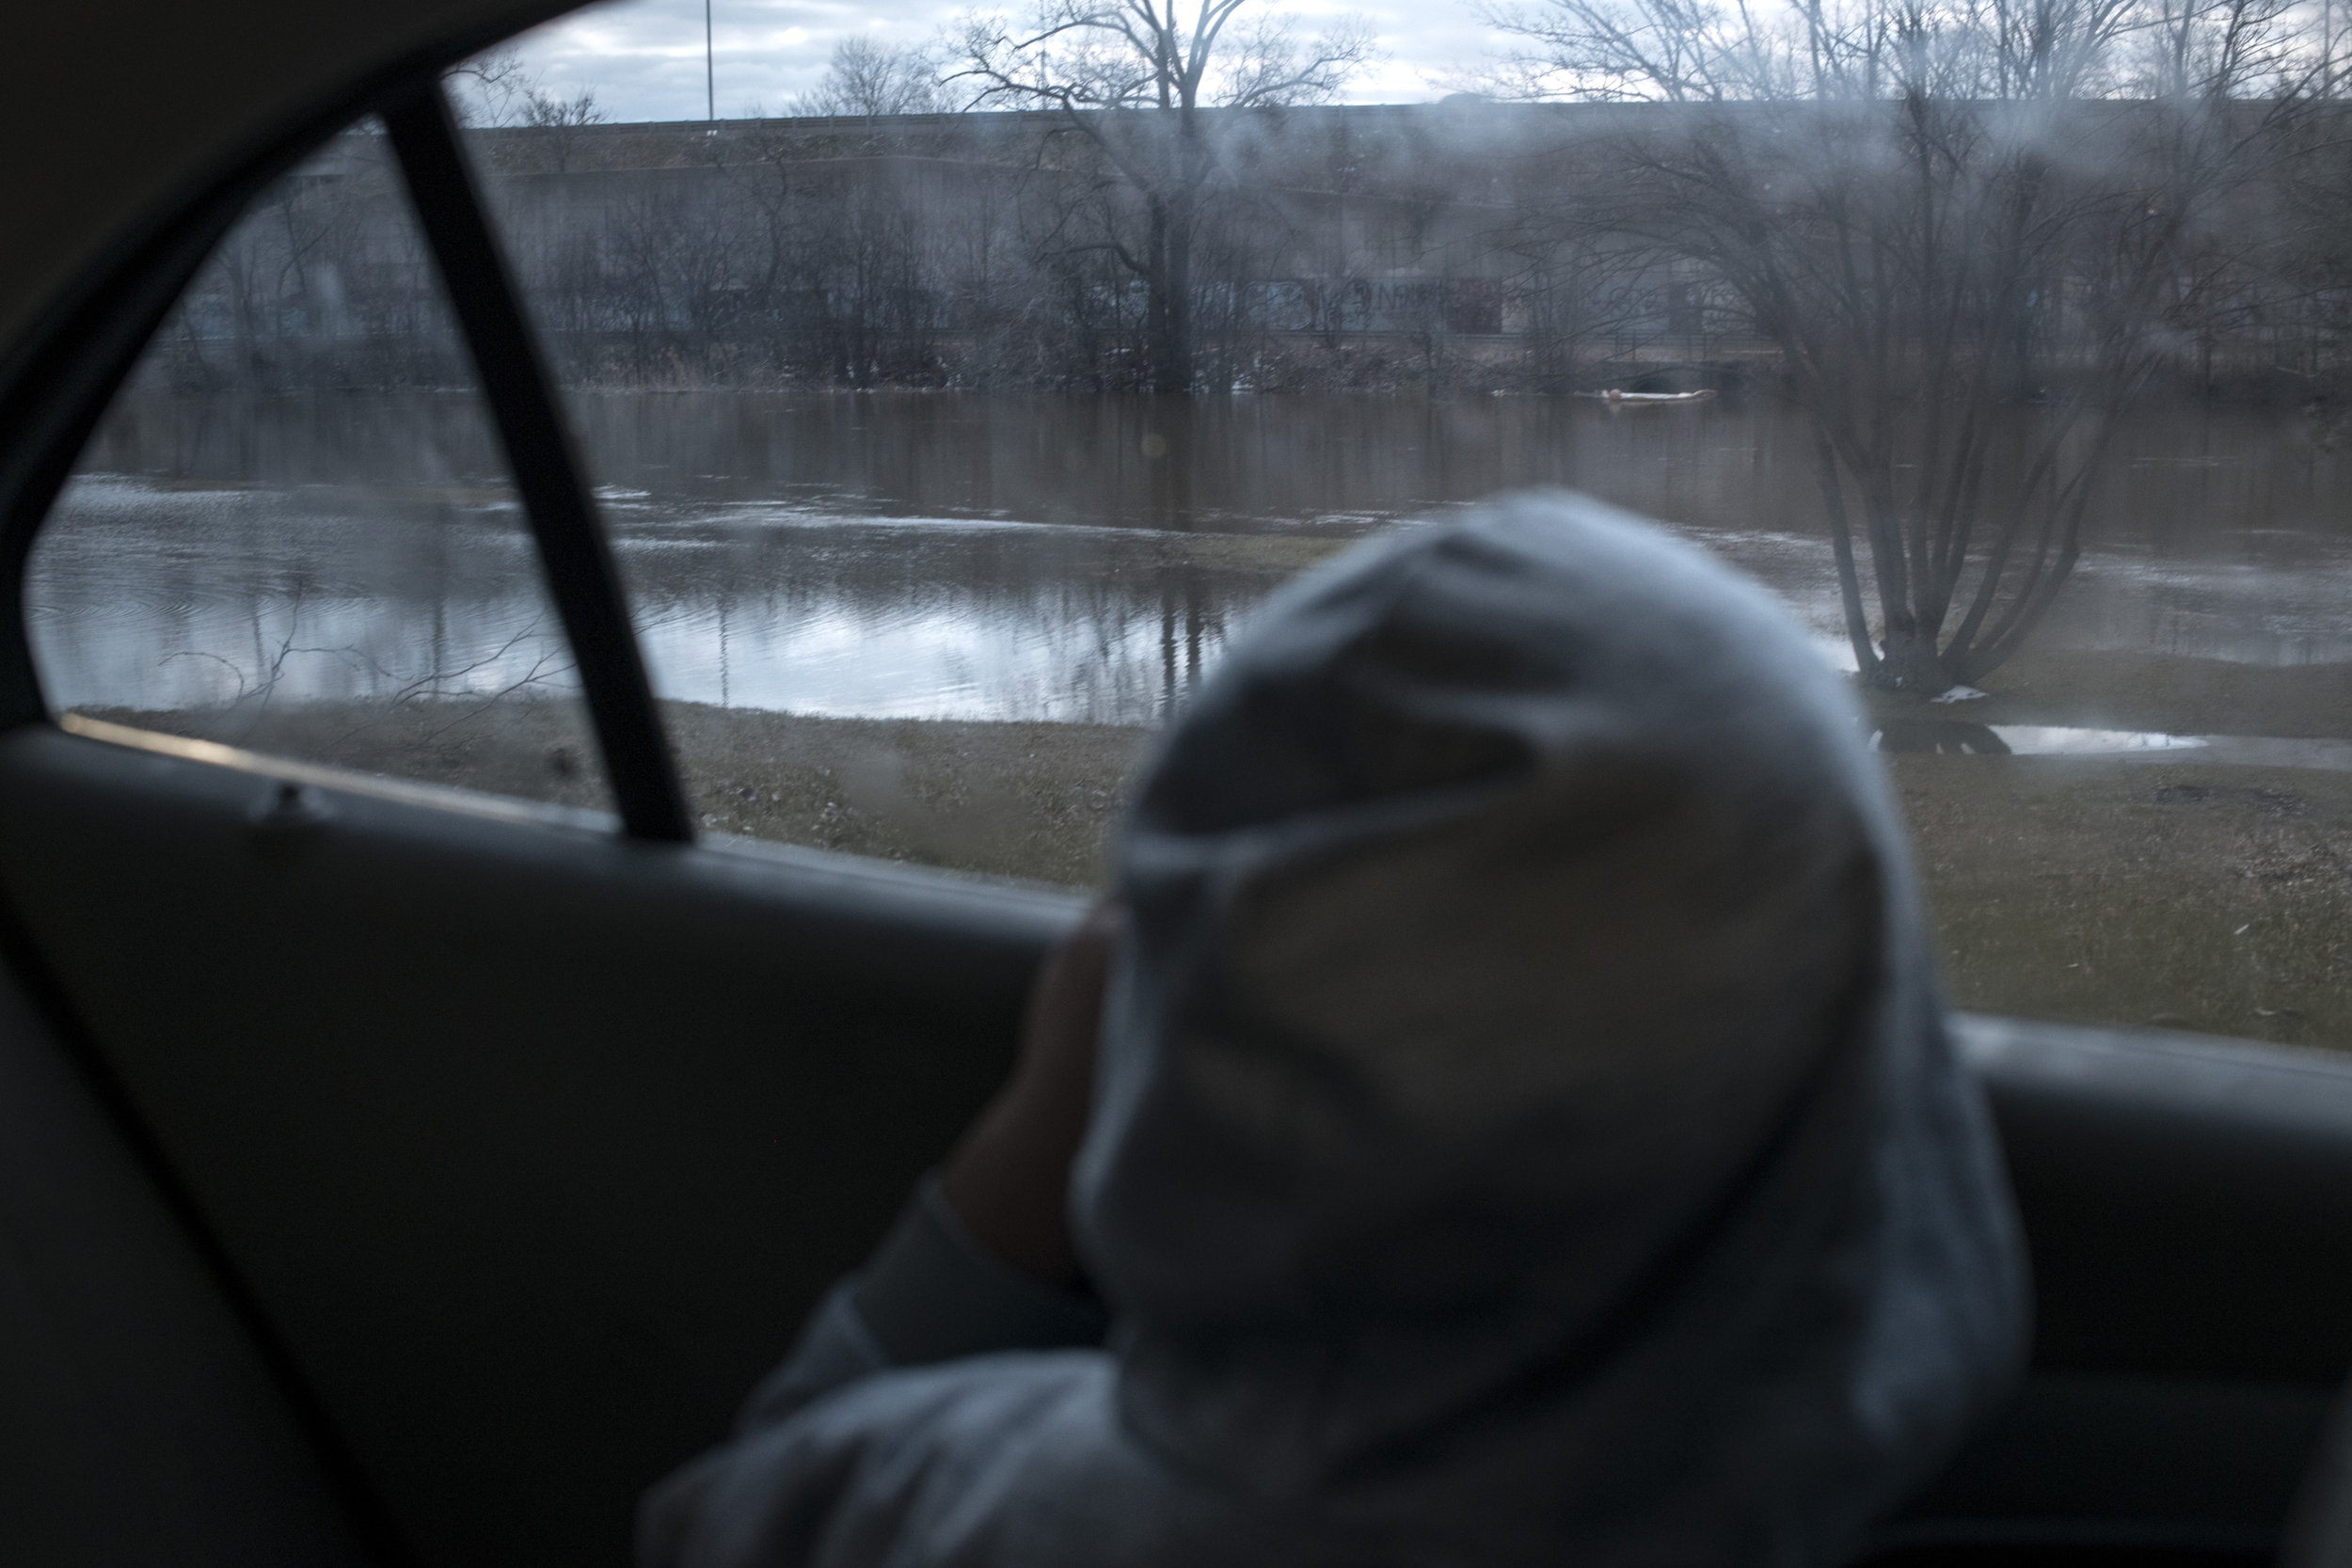 Sincere Smith, 5, gazes out of the window of his mother's car at the Flint river after noticing the water level had risen significantly following heavy rains on April 18, 2018. His mother, Ariana Hawk, previously remarked that the Flint river water, which was the city's water source at the start of the water crisis, still makes him nervous and he knows it as the water that gave him rashes.